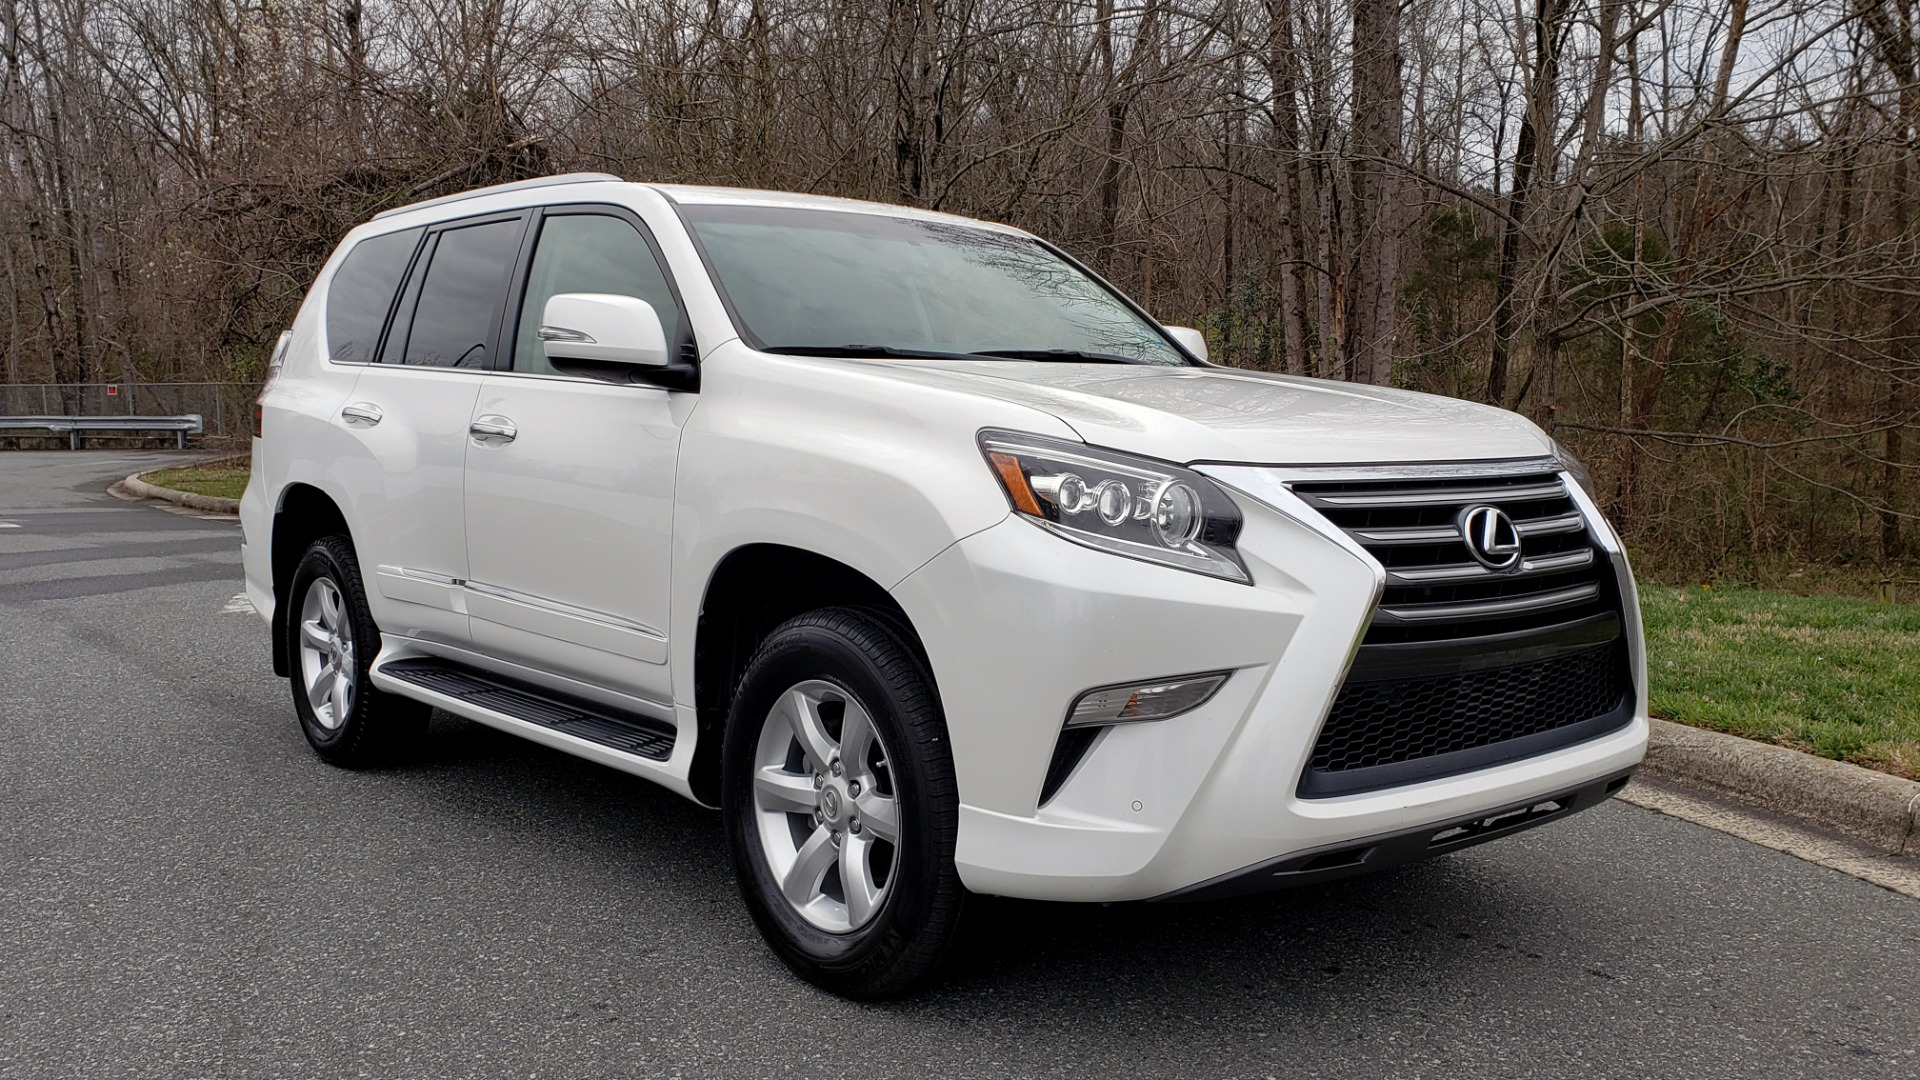 Used 2017 Lexus GX 460 4WD / NAV / VENT STS / SUNROOF / PARK ASST / BSM for sale Sold at Formula Imports in Charlotte NC 28227 4